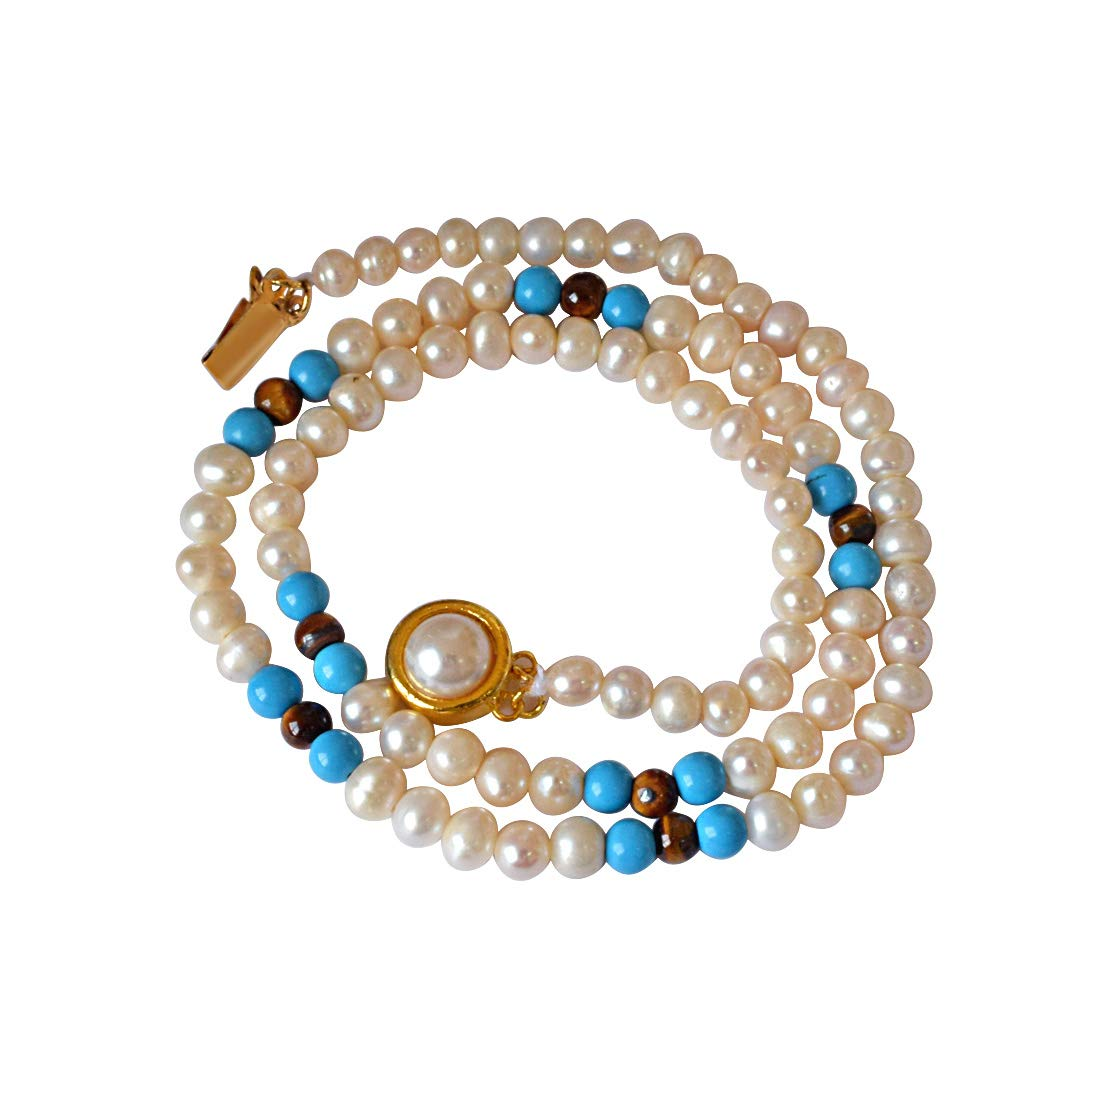 Blue Lagoon - Single Line Real Freshwater Pearl, Turquoise & Tiger Eye Beads Necklace for Women (SN401)